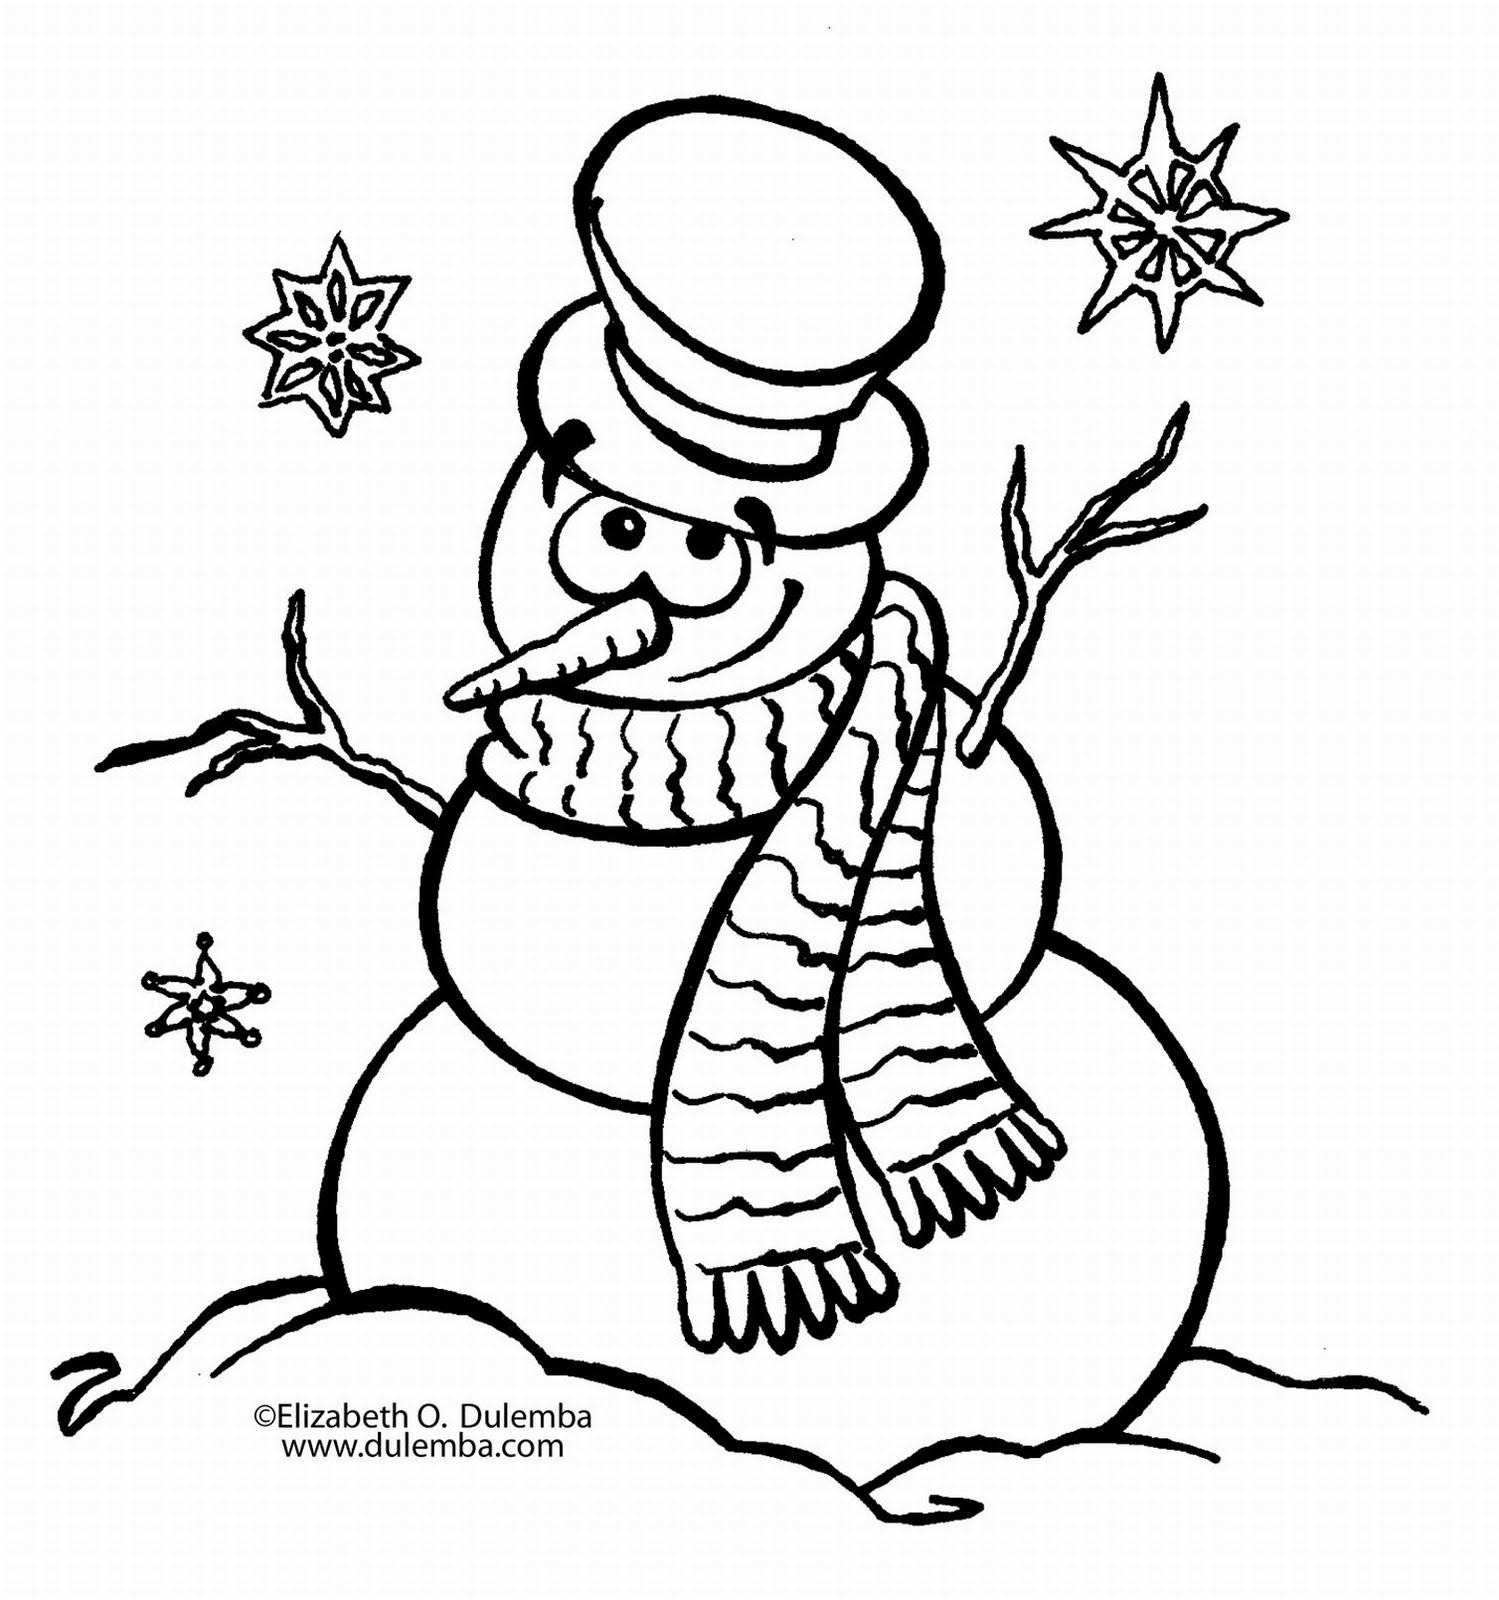 Blank snowman coloring pages disney coloring pages for Coloring pages of snowman